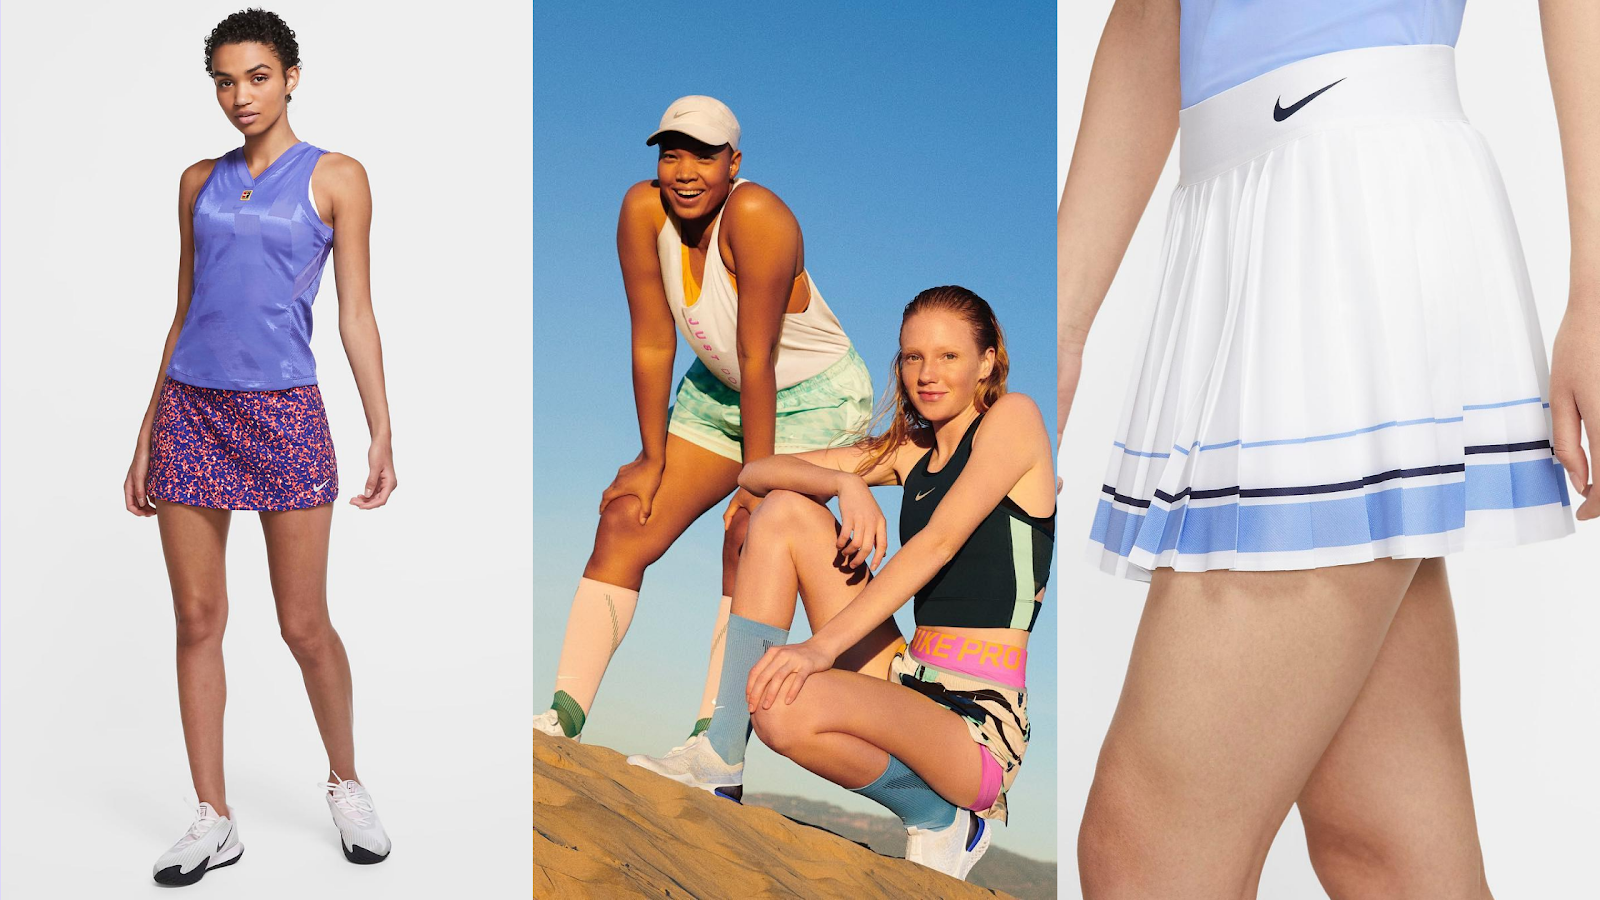 Nike tennis skirts for sale